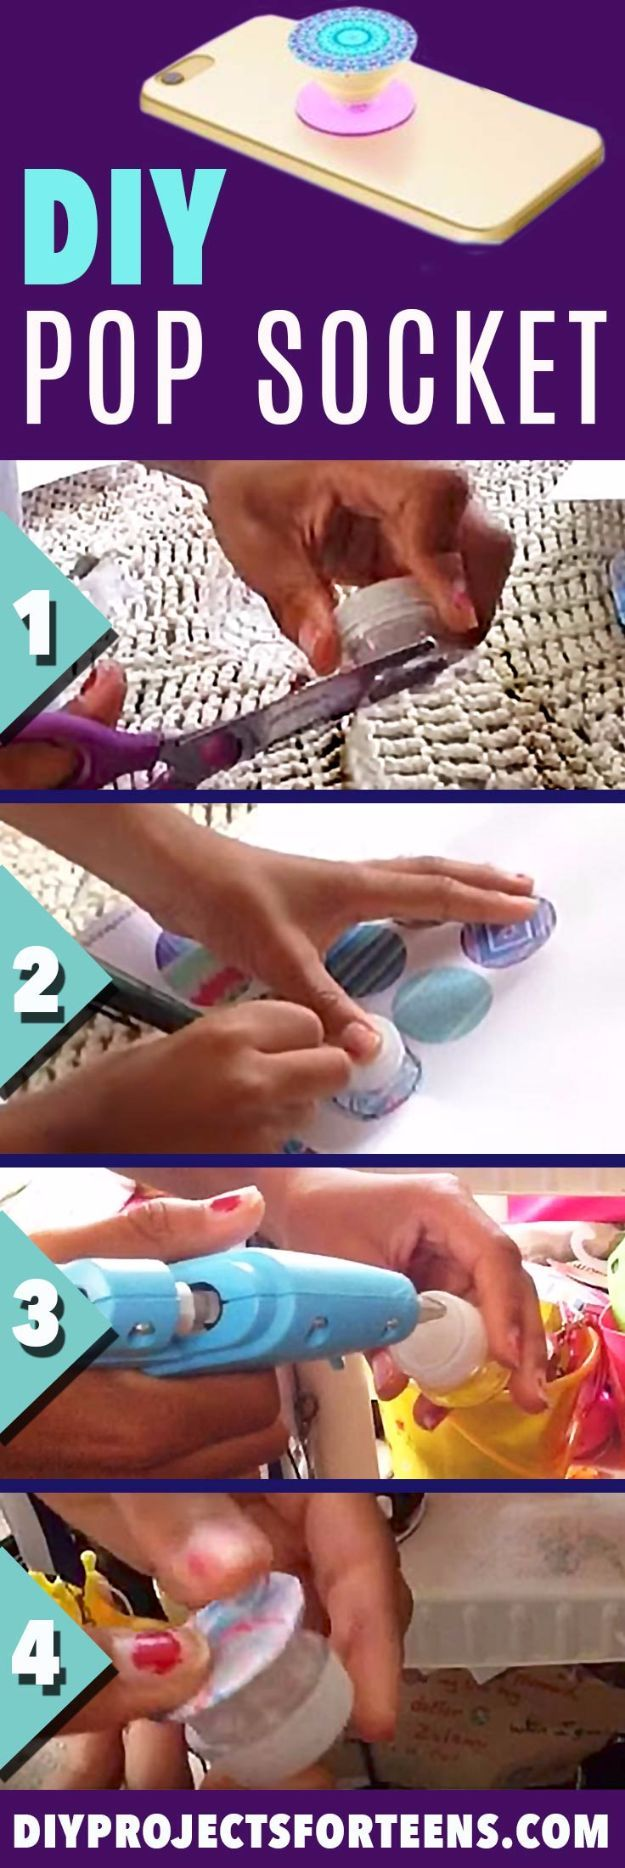 35 Cool DIY Gadgets You Can Make To Impress Your Friends #craftstomakeandsell